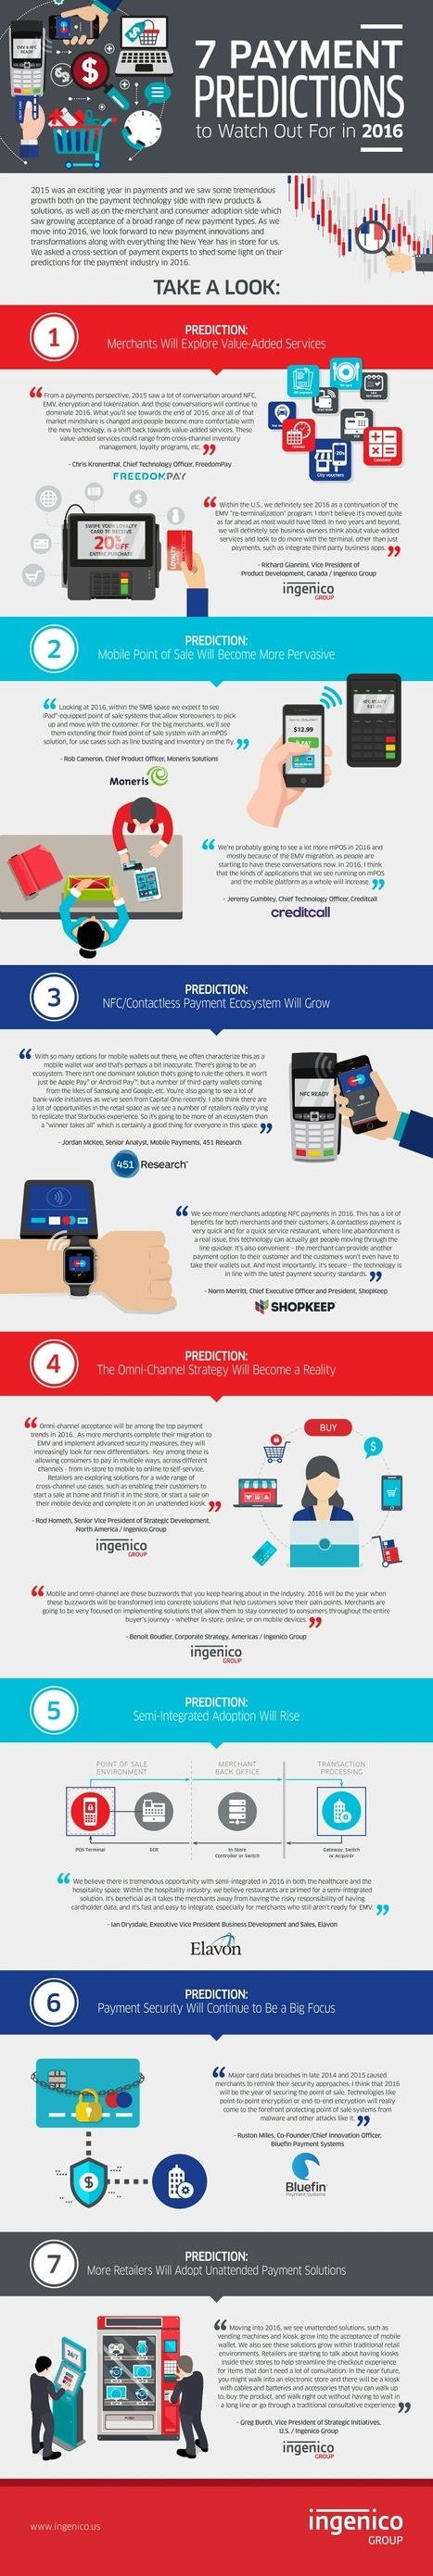 Value-added service, mPOS, contactless ecosystems – what are the payment predictions for 2016? (Infographic) » PaymentEye | Mobile Payments Innovation | Scoop.it